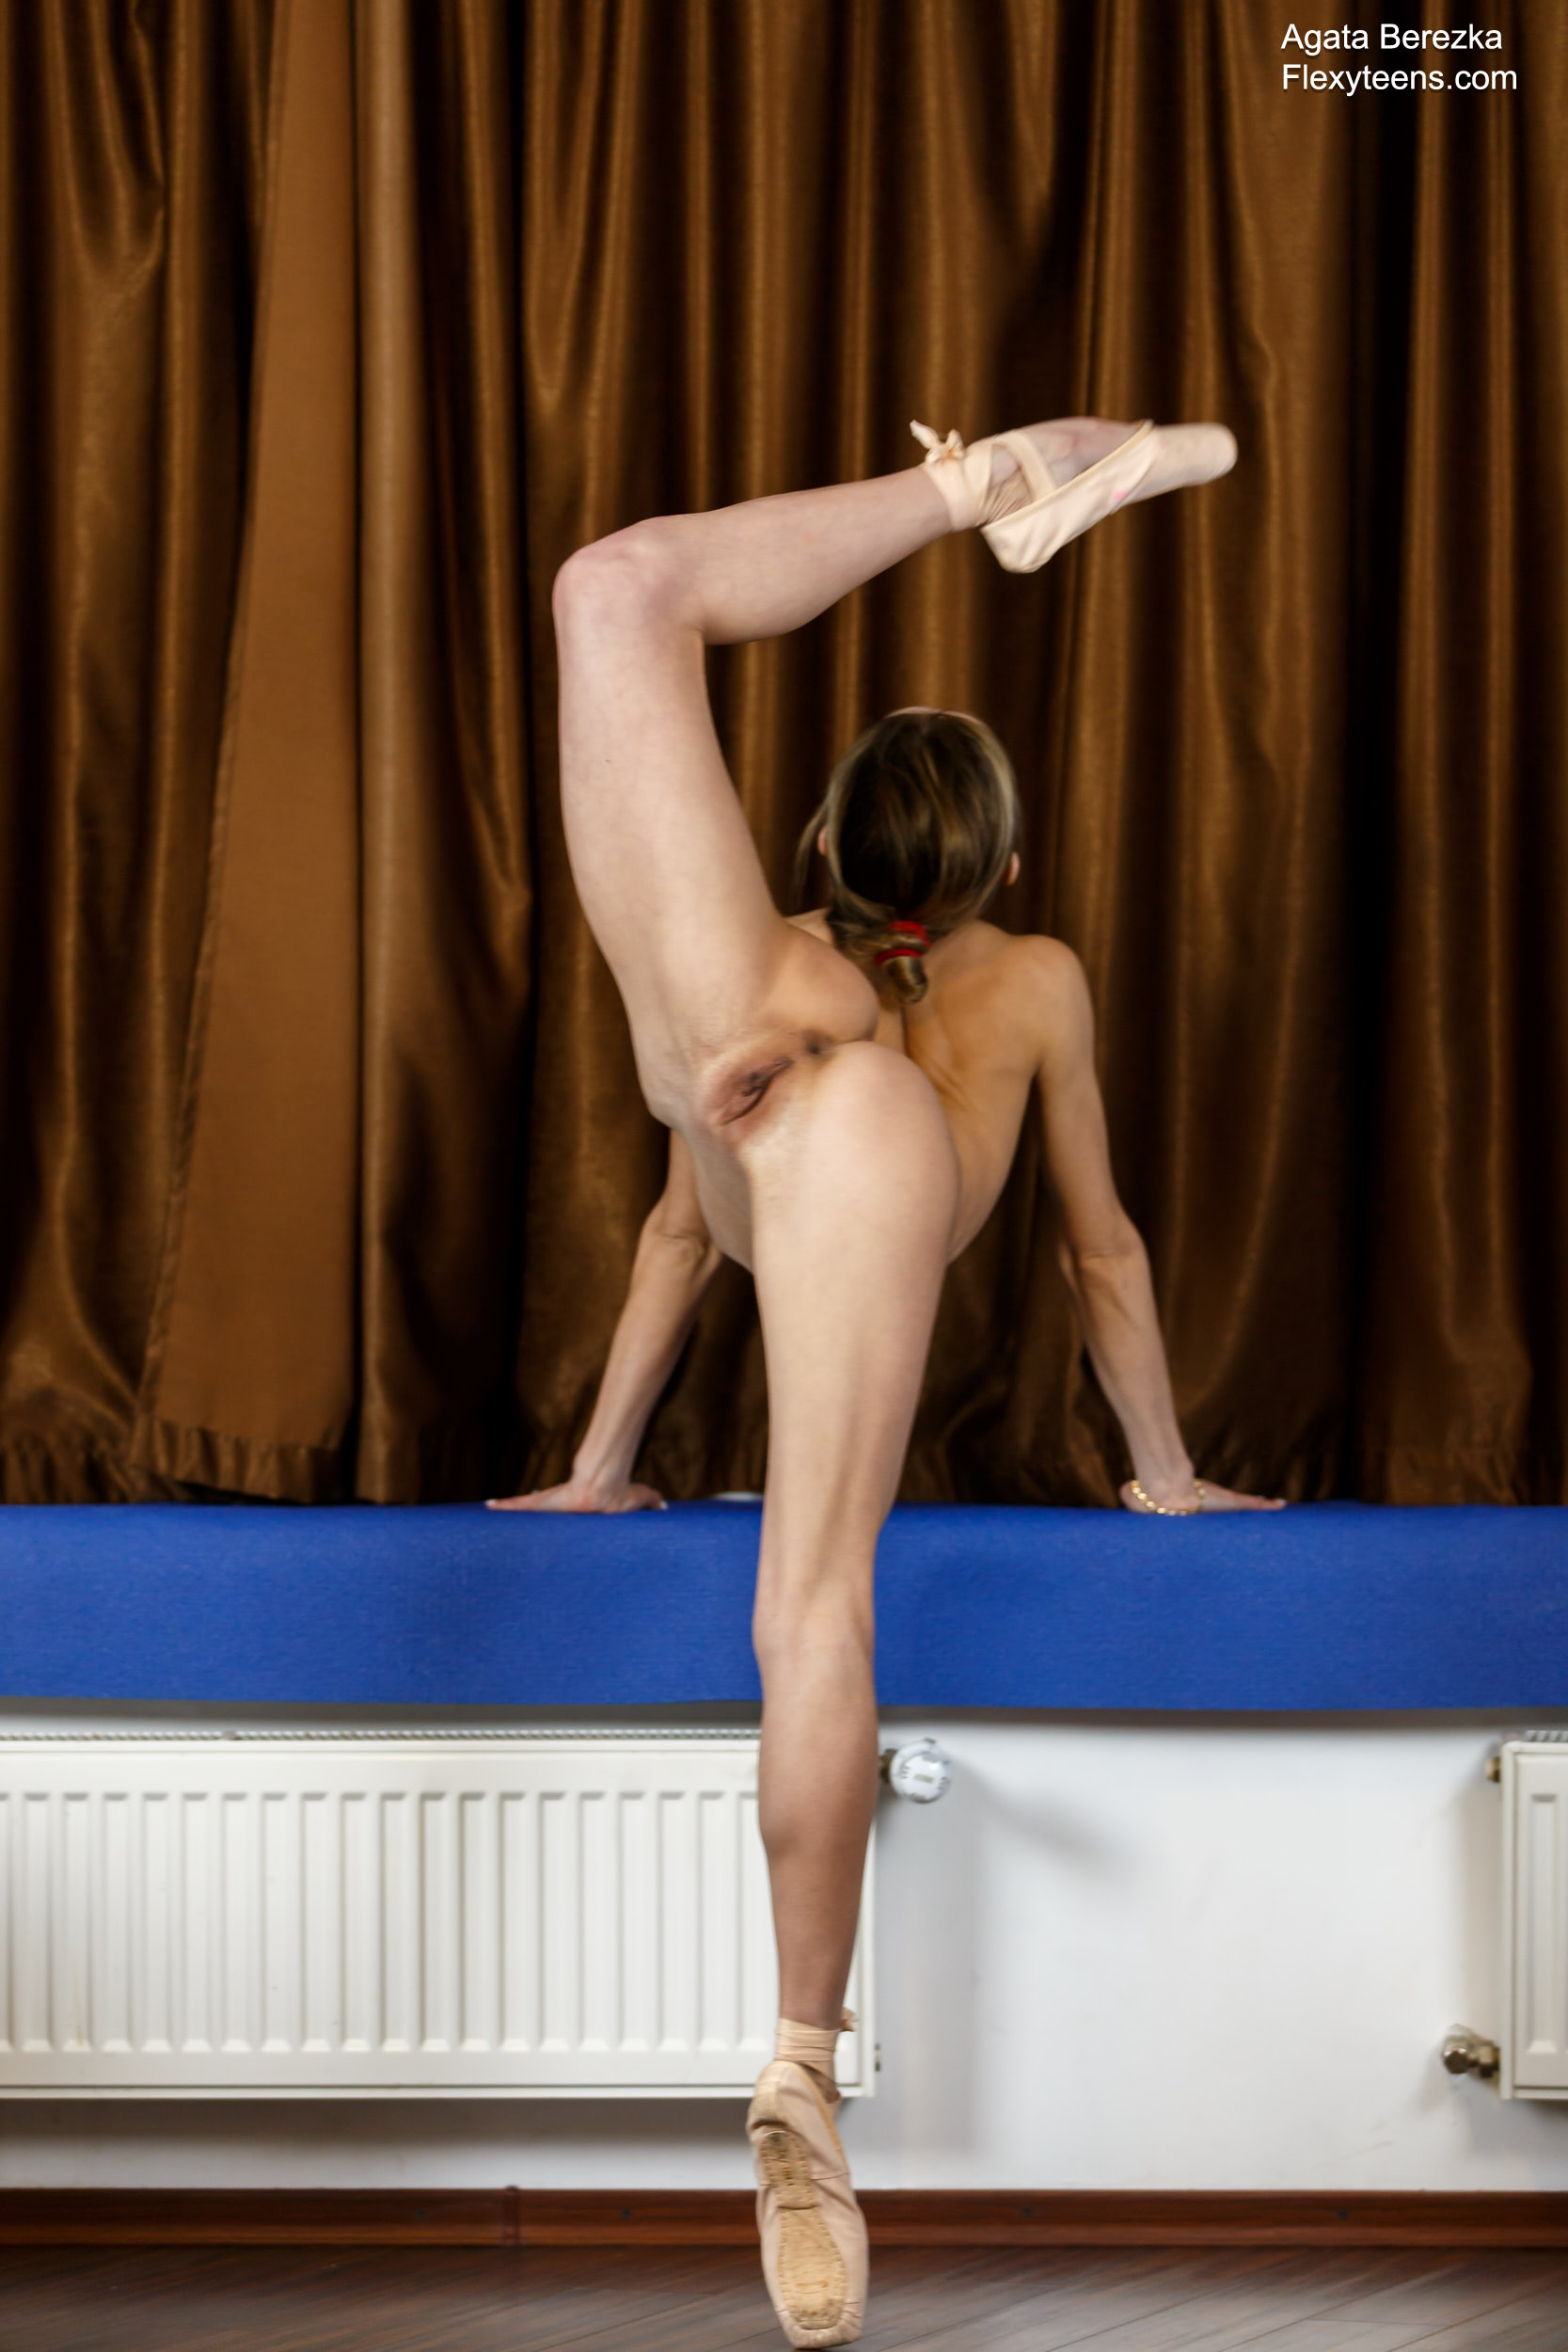 Naked teen gymnast shows erotic workout - 3 part 8